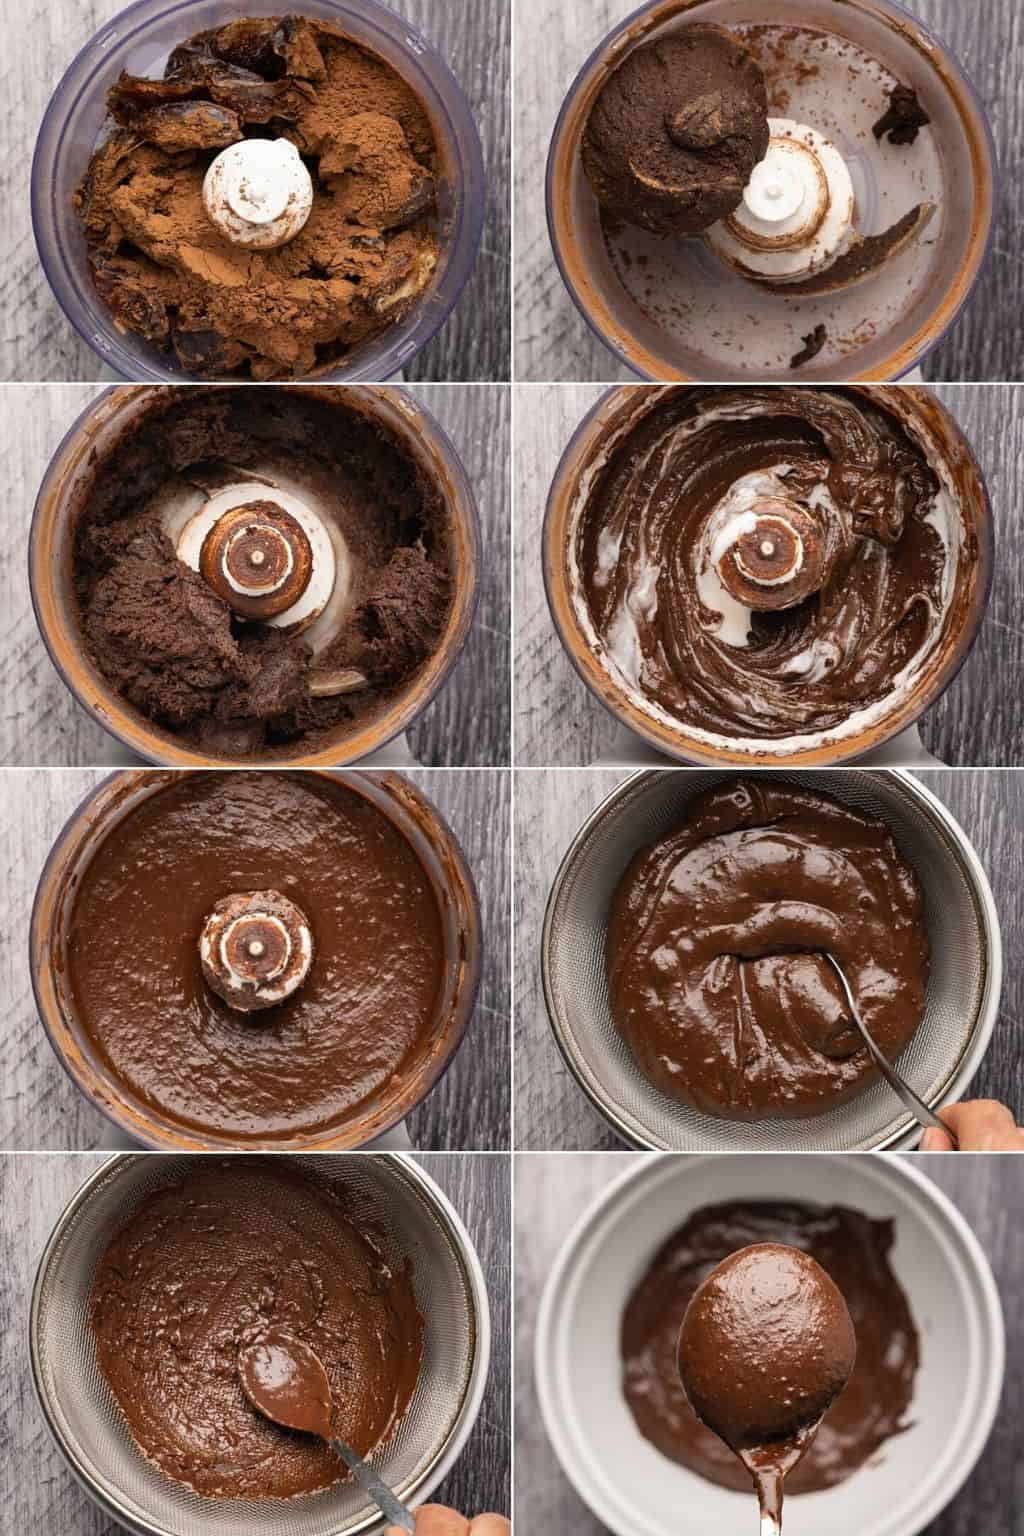 Step by step process photo collage of how to make vegan chocolate mousse.